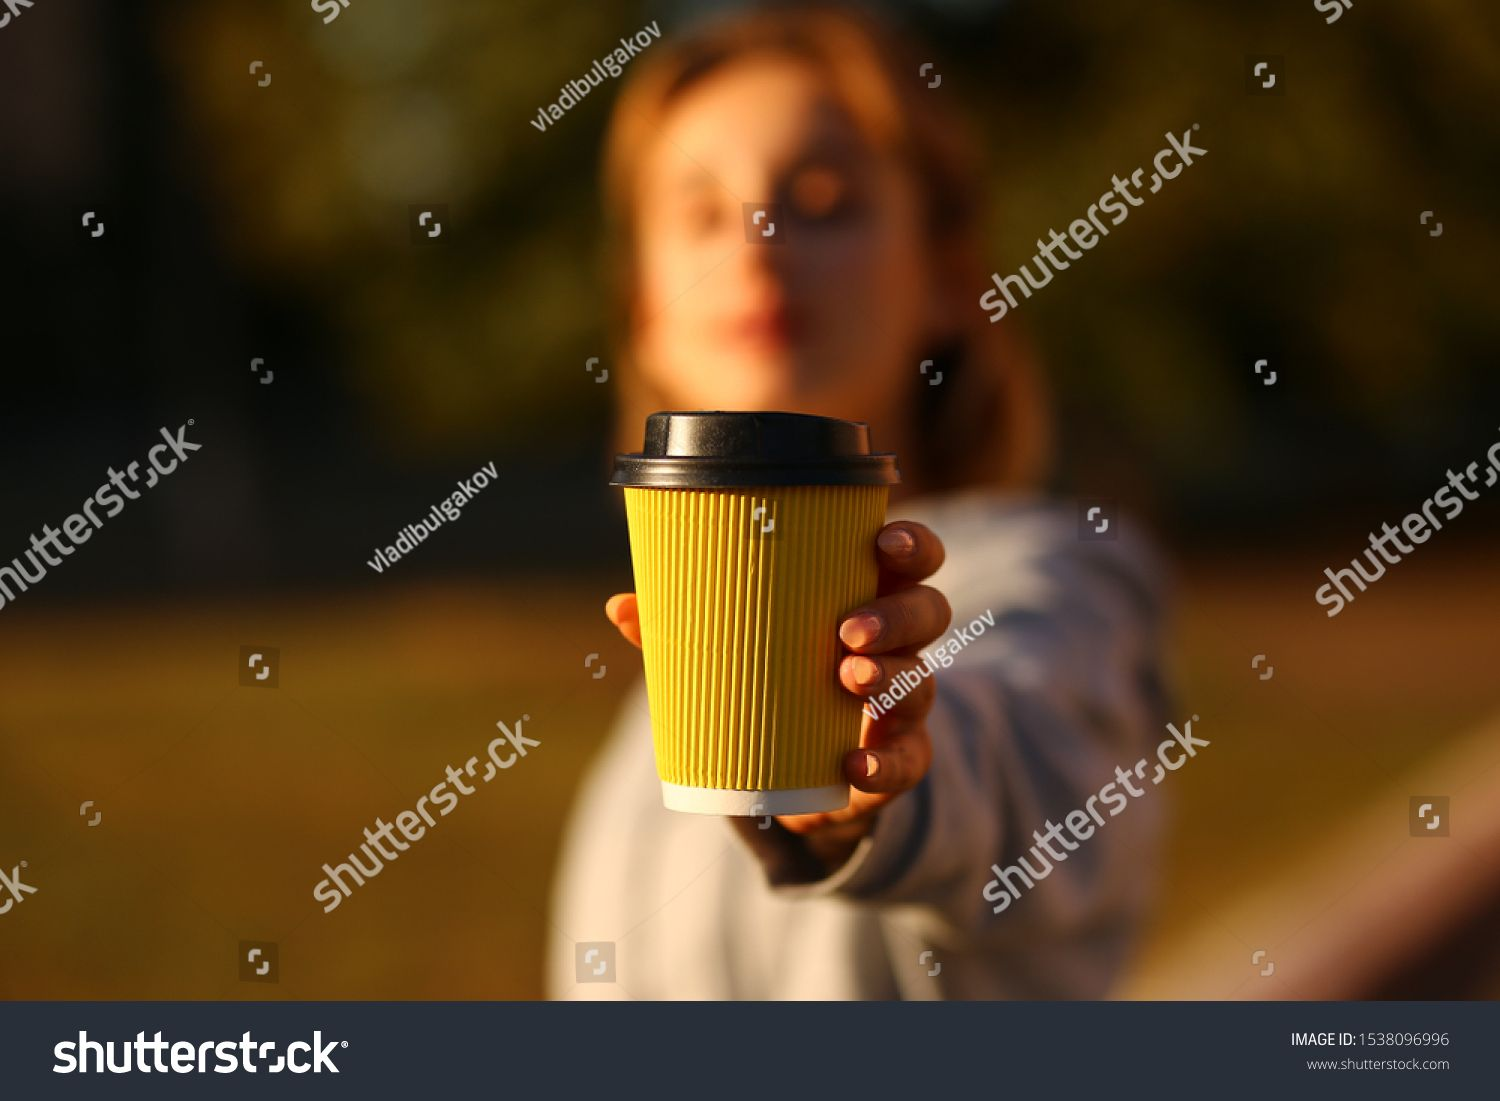 Girl Showing Paper Cup Of Coffee In His Hands Close Up American Paper Eco Cup Girl Drinking Coffee Indoors Sponsored Ad Cup Coff Paper Cup Eco Cup Cup